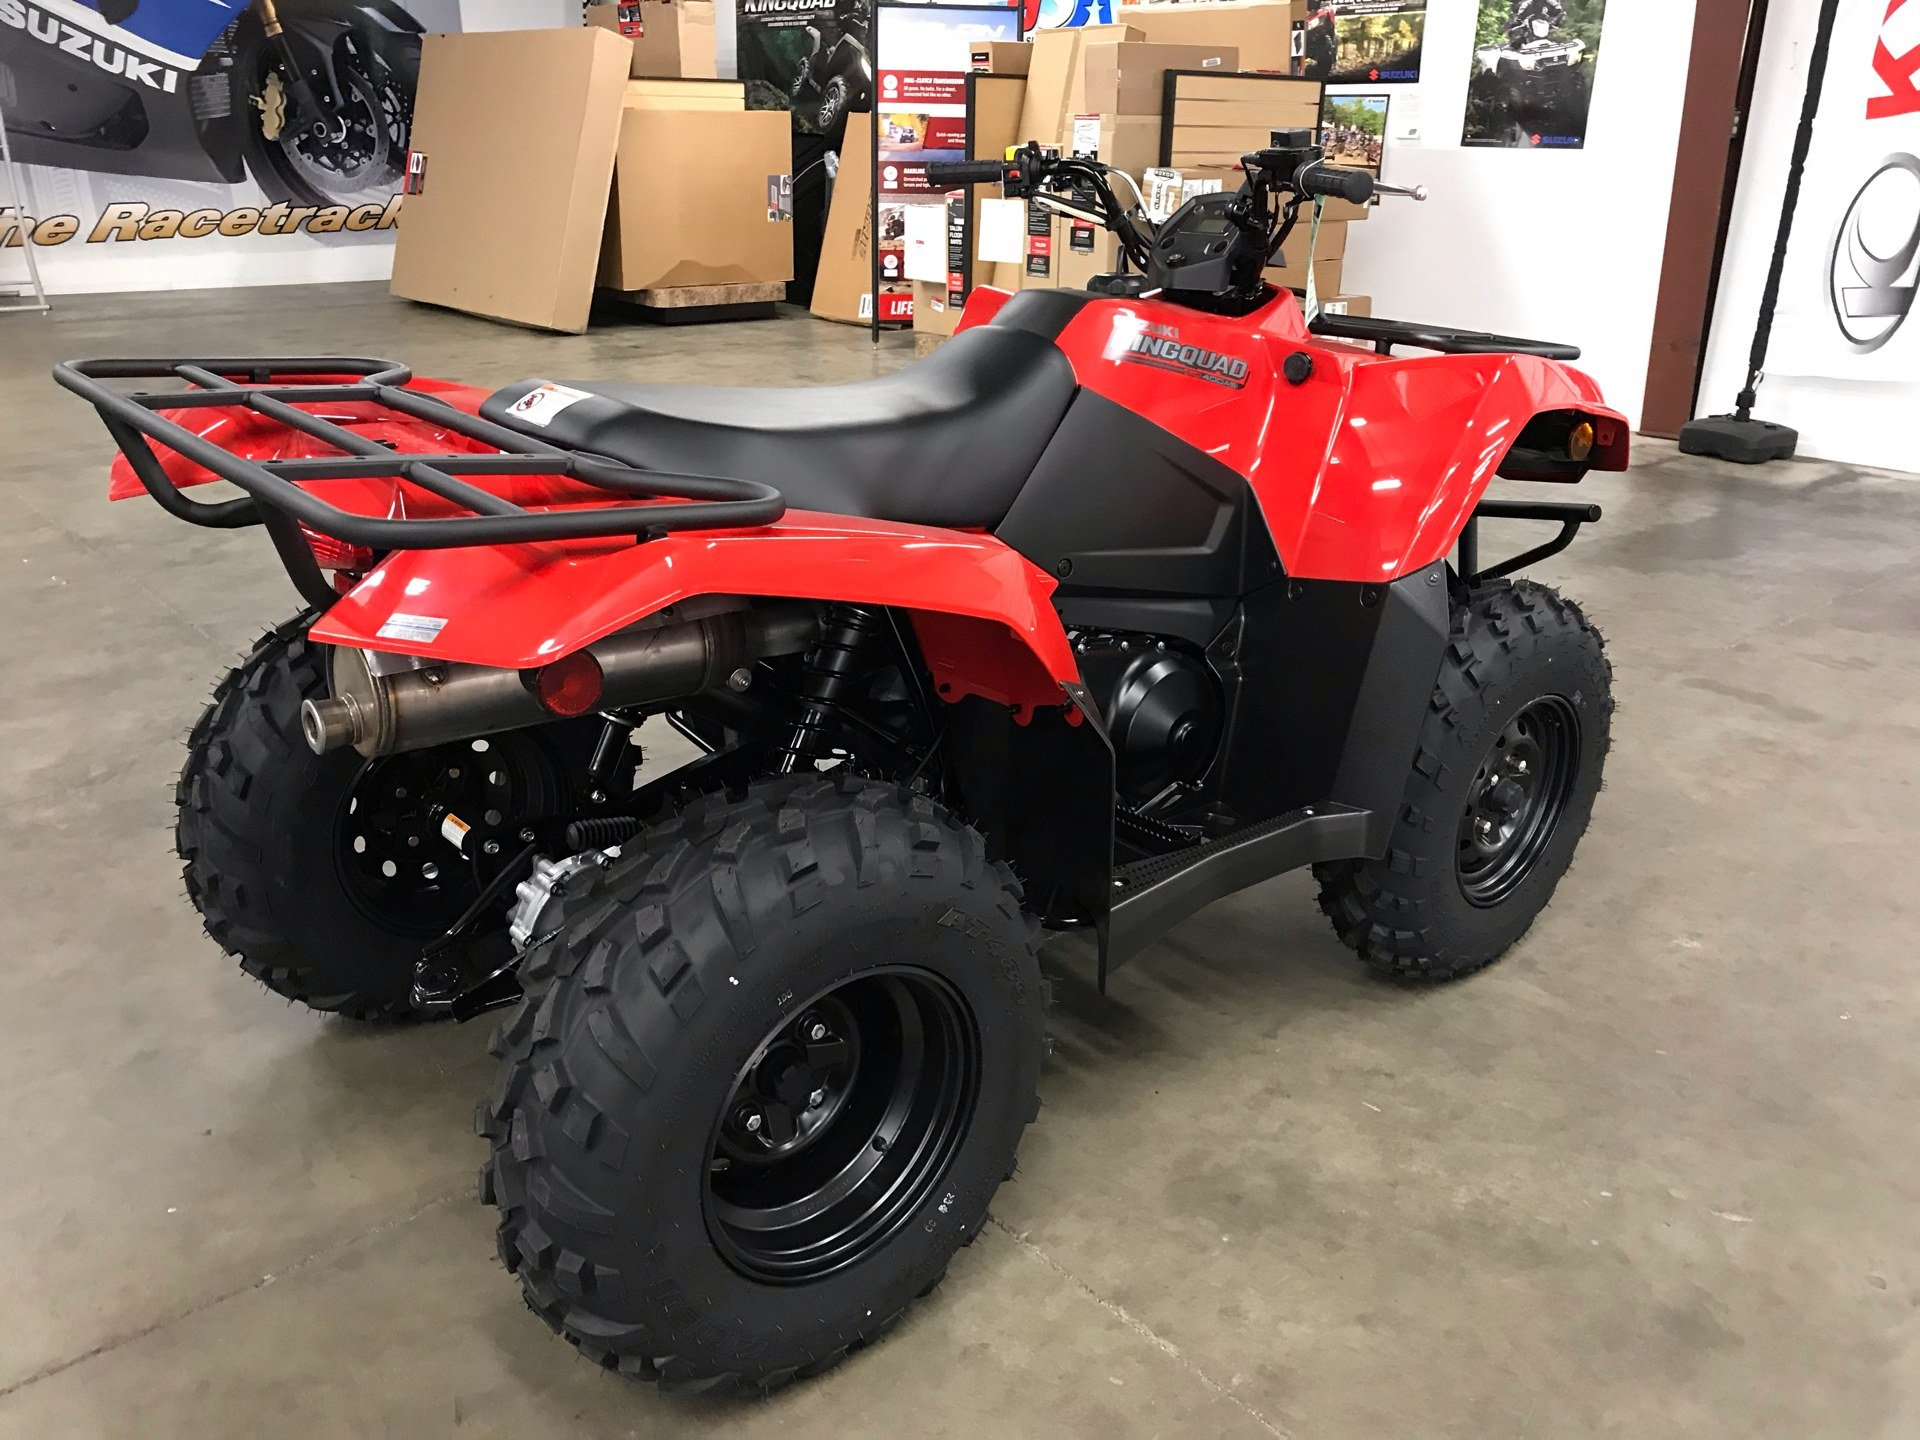 2021 Suzuki KingQuad 400ASi in Sanford, North Carolina - Photo 9